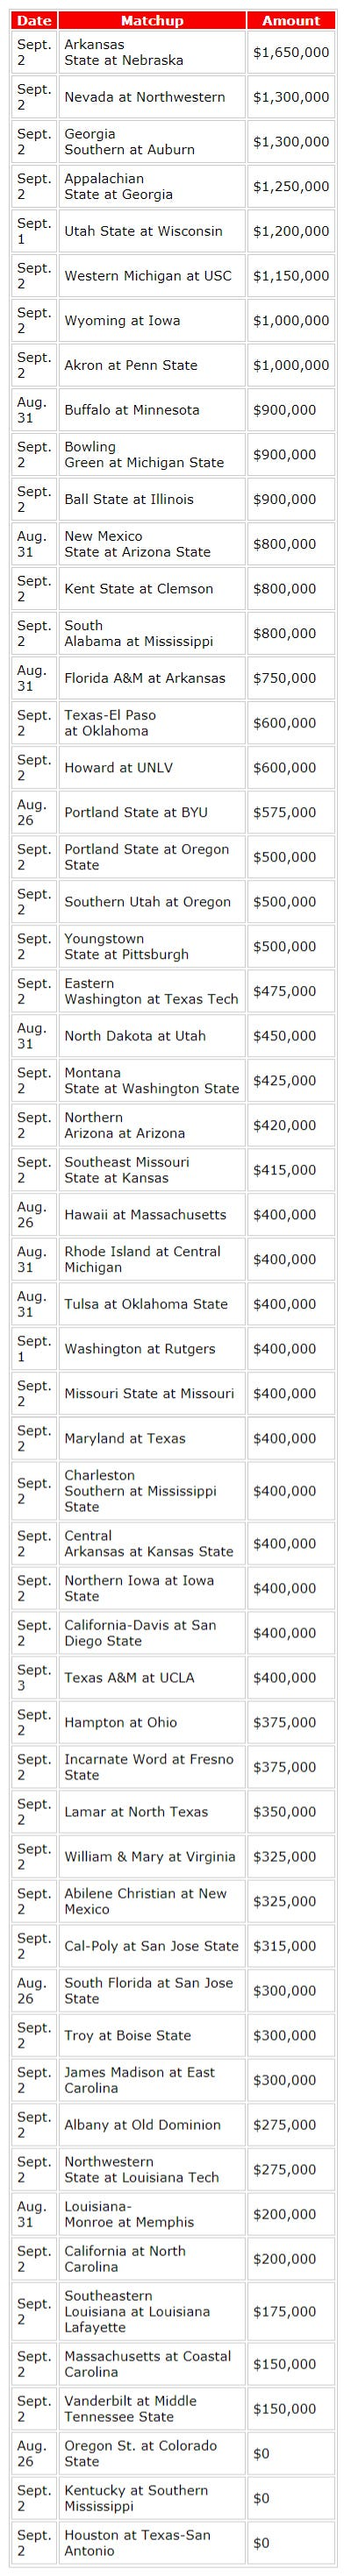 College football: Guarantee games worth $150 million for